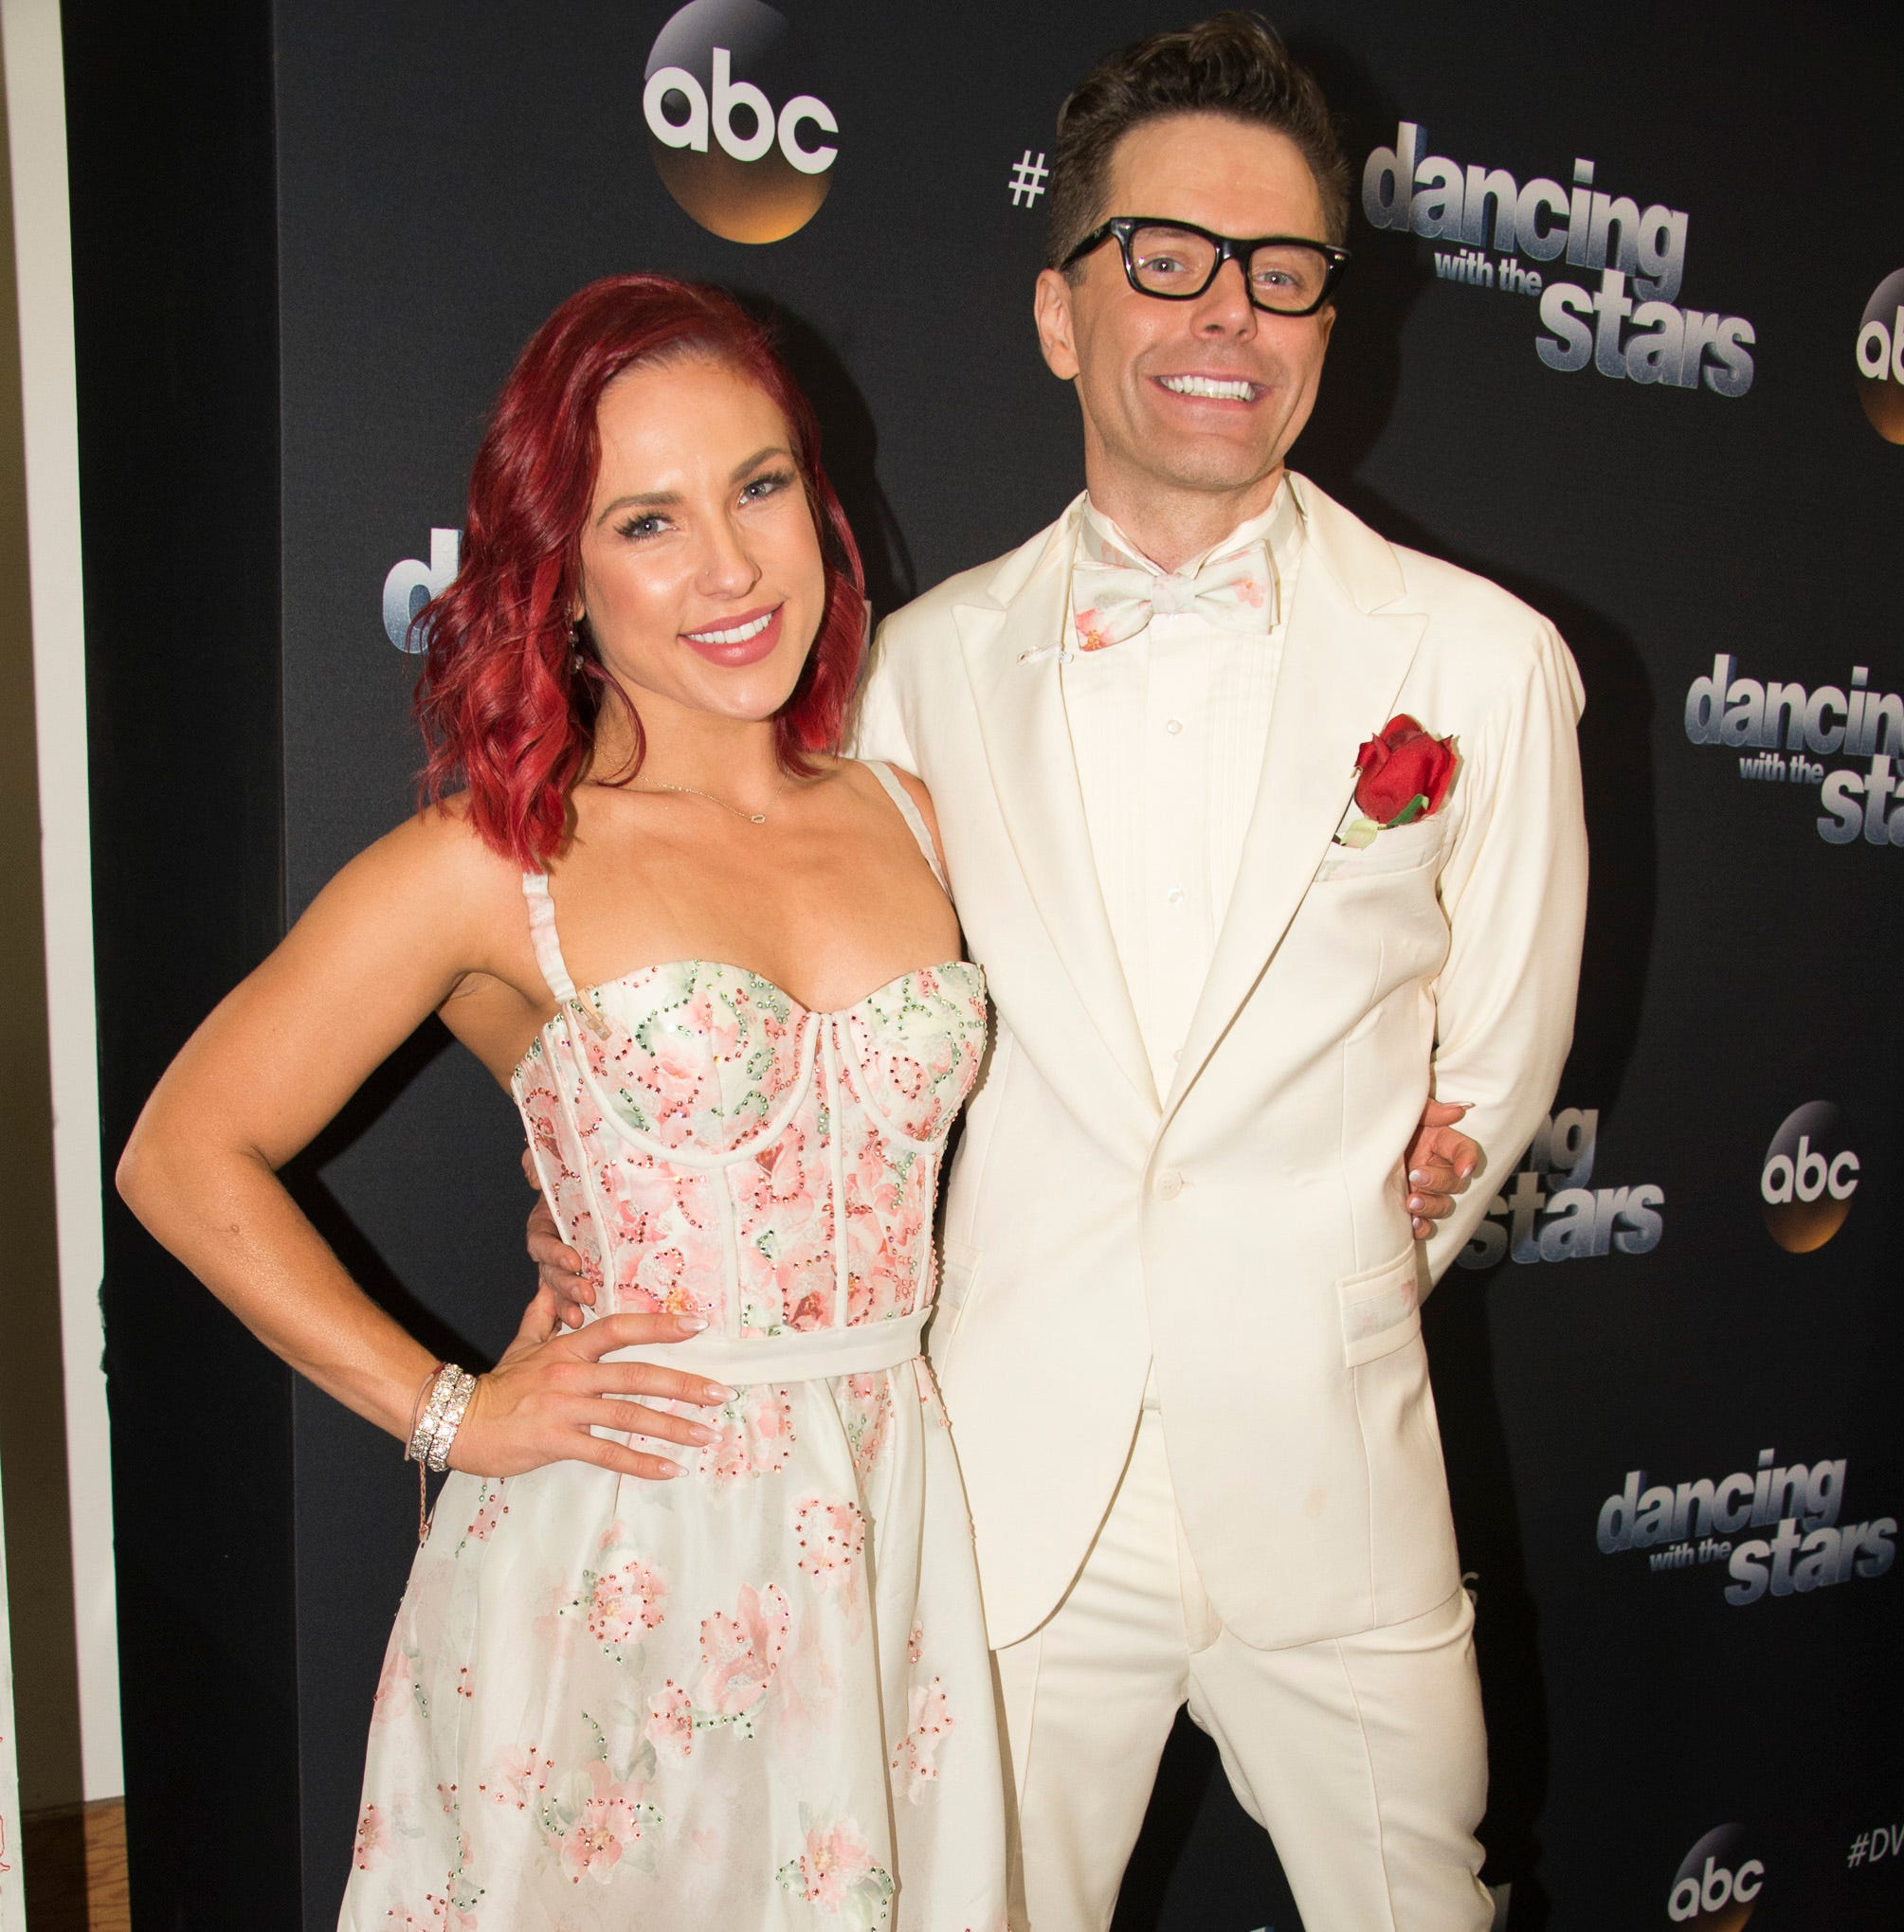 Bobby Bones channeled Disney's Prince Eric on 'Dancing with the Stars,' did he pass?